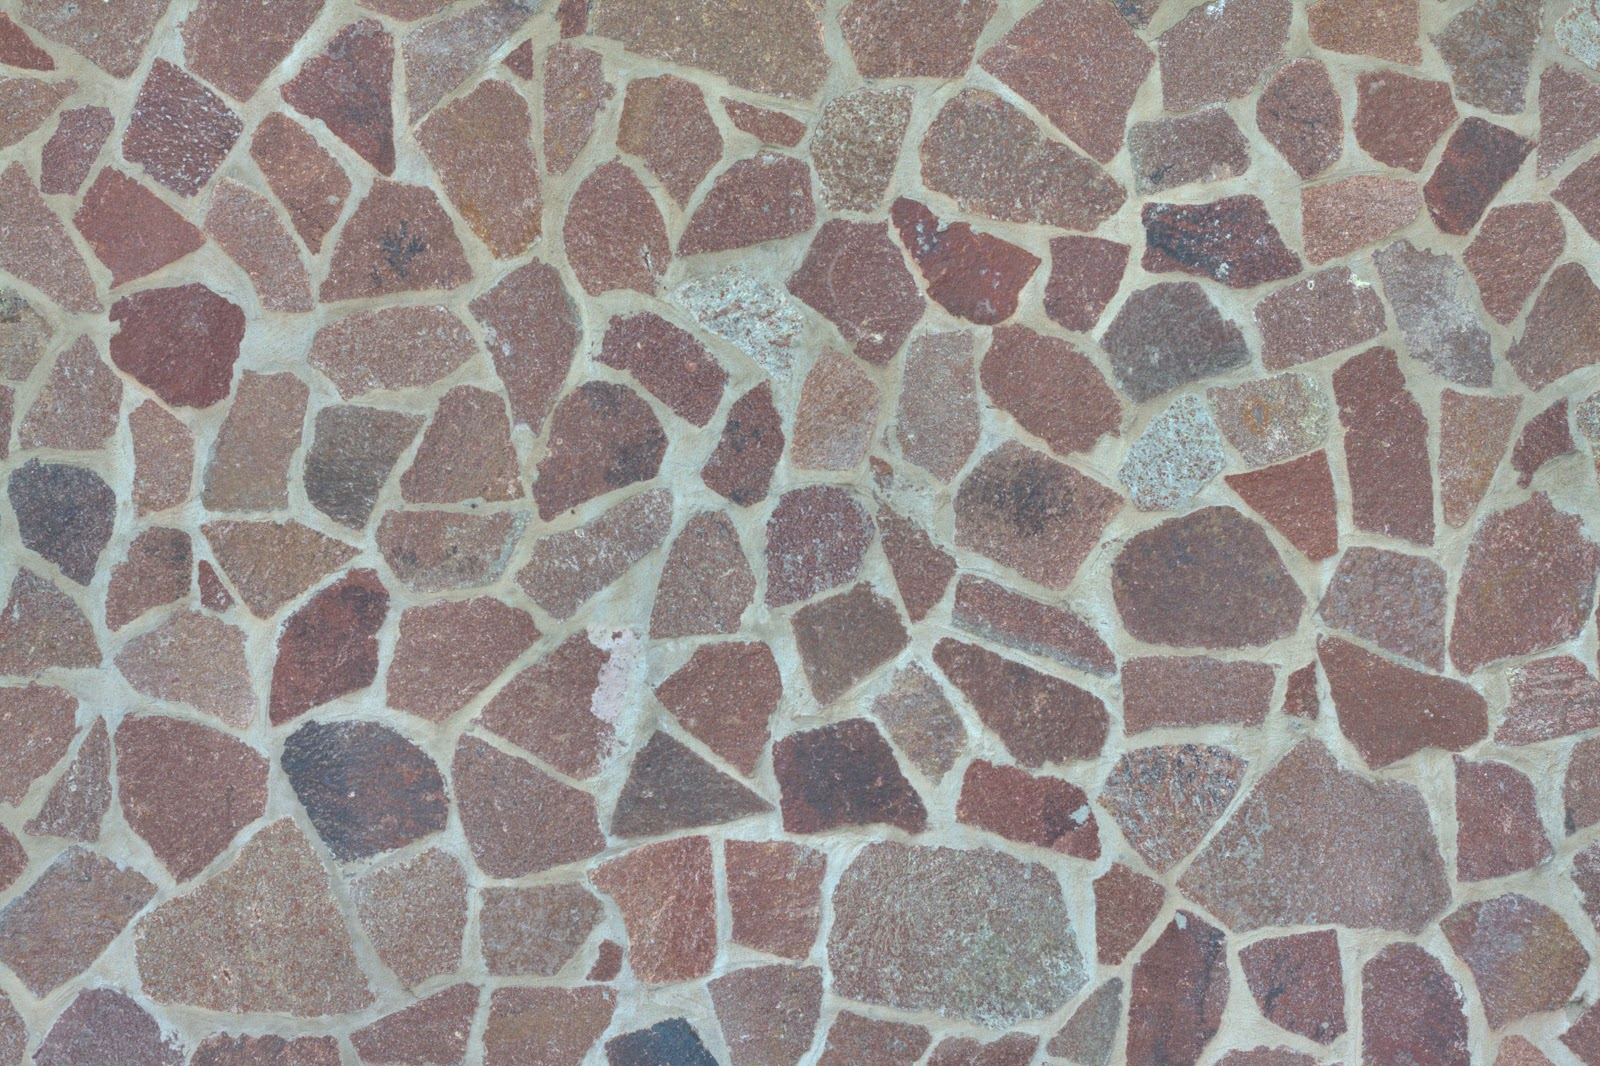 Download Games Design My Home High Resolution Seamless Textures Stone Giraffe Floor